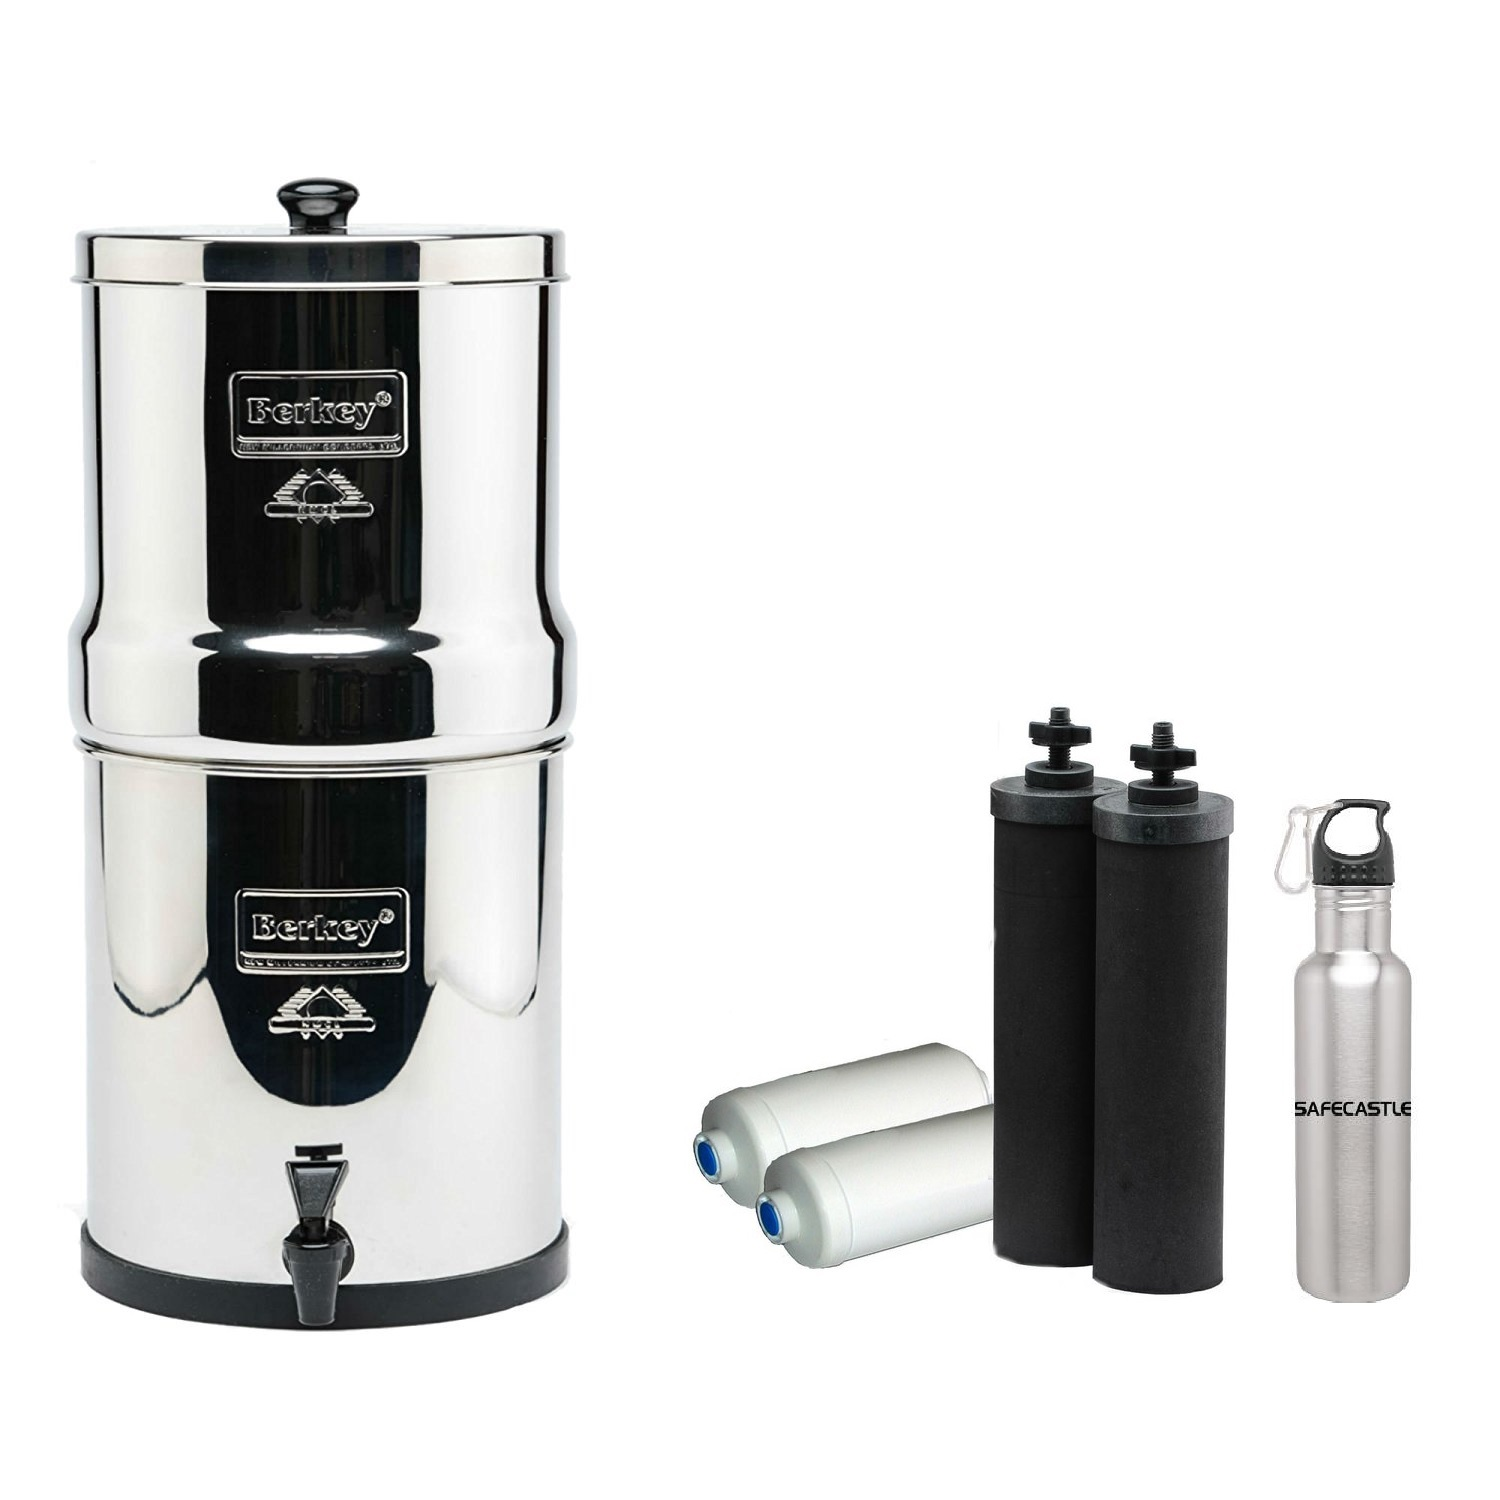 Big Berkey Water Purifier with 2 Black, 2 PF-2 Filters and Safecastle Bottle FREE by Berkey